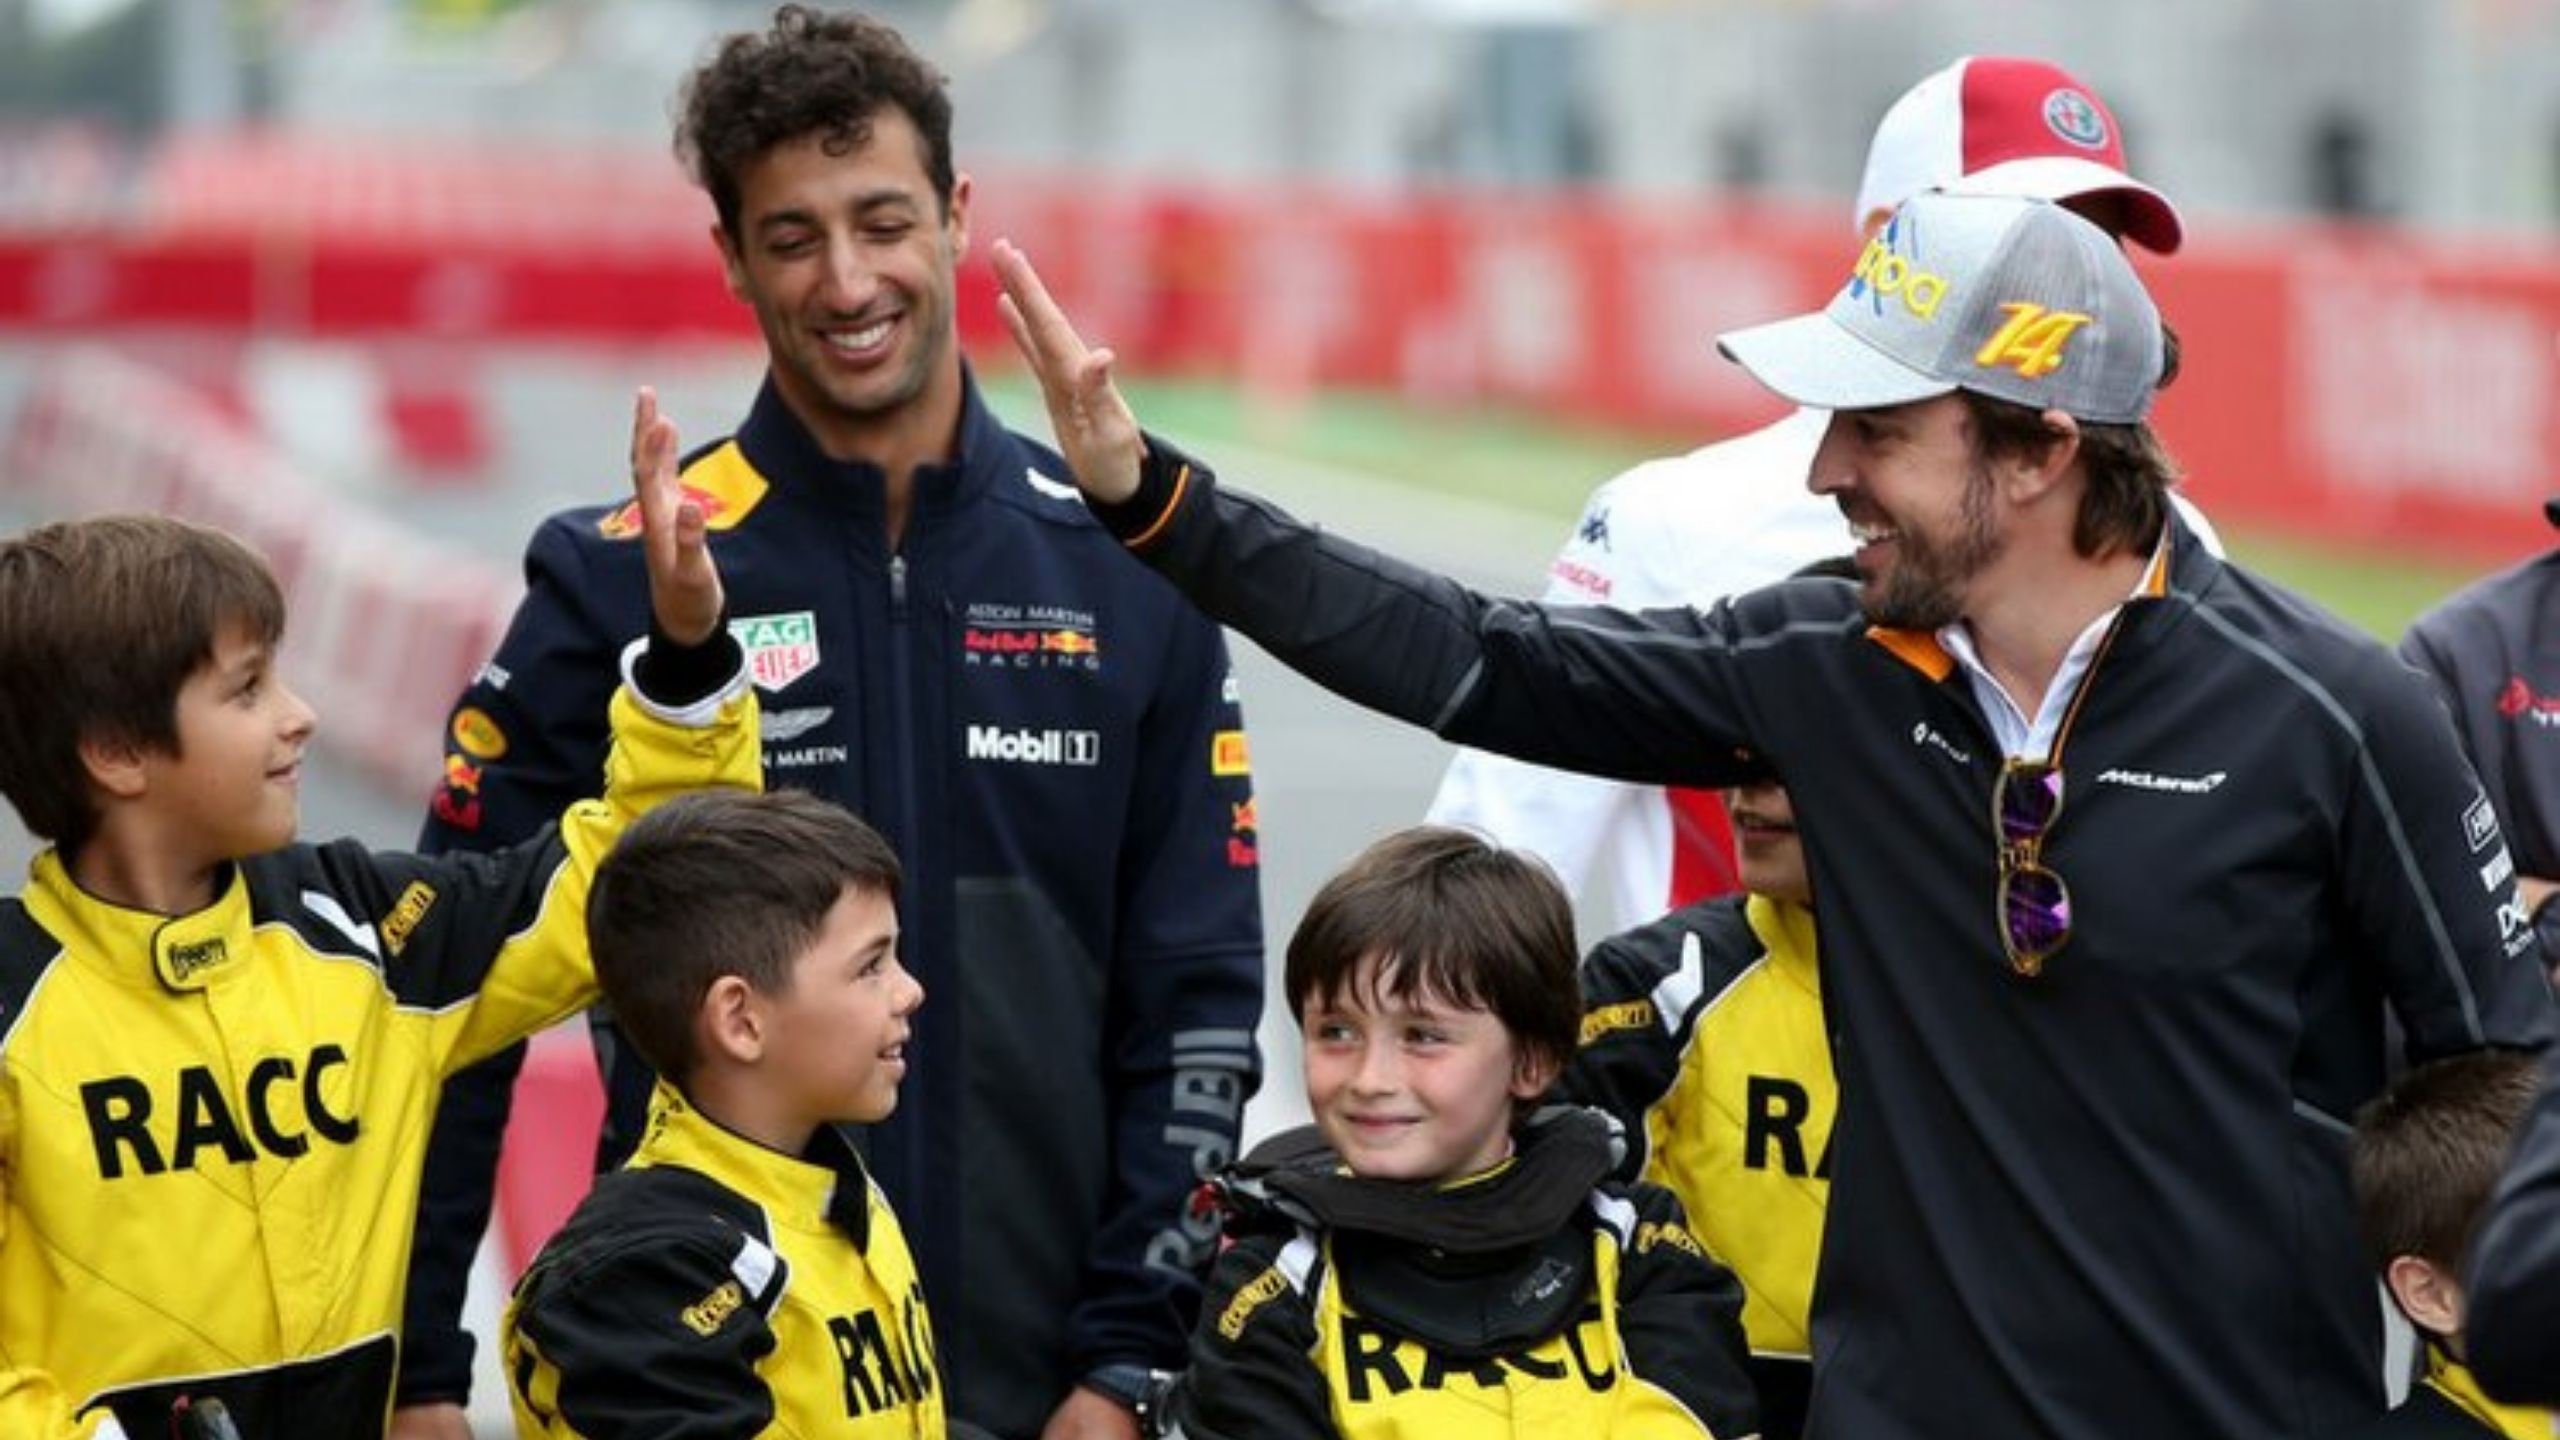 """""""It sounds sweet!"""" - Daniel Ricciardo mightily impressed with Fernando Alonso and his 2005 title-winning Renault R25 V10"""